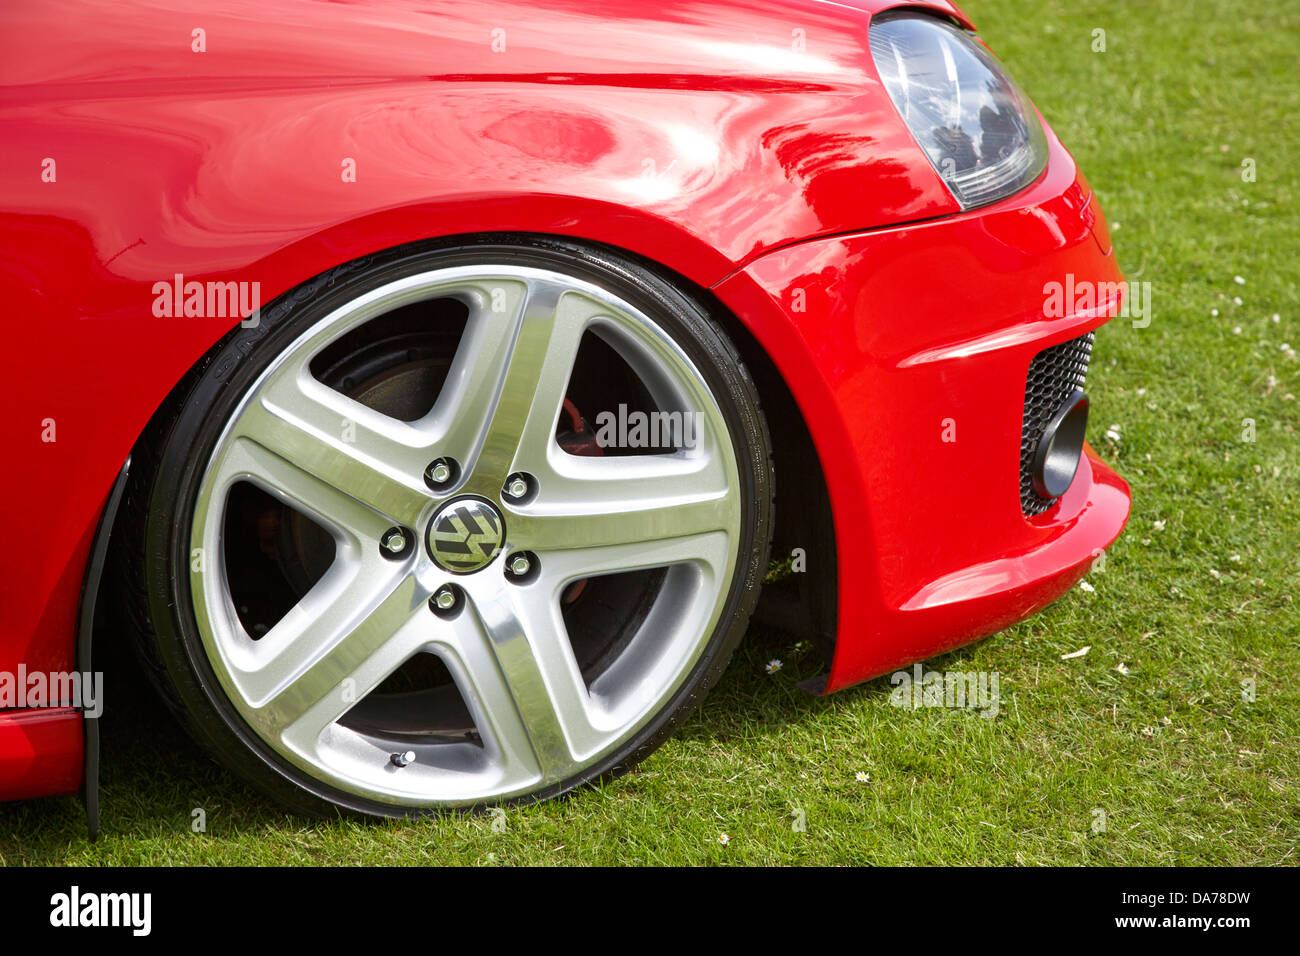 lowered low profile alloy wheel modified custom performance car show county down northern ireland uk - Stock Image